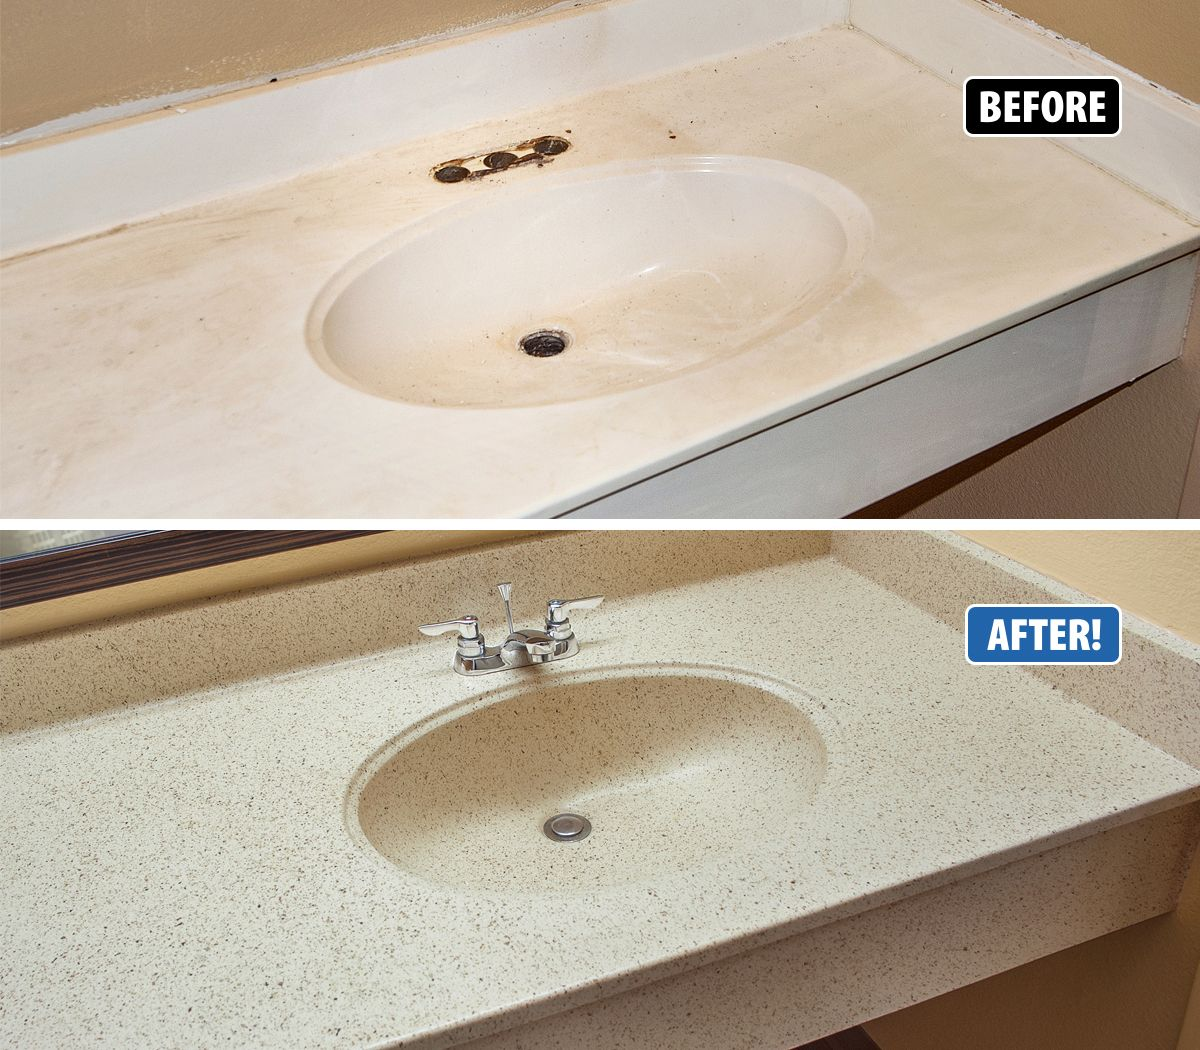 This Cultured Marble Sink And Vanity Are All In One Piece Replacement Would Have Posed A Real Challenge To Find Something With The Same Dimensions As